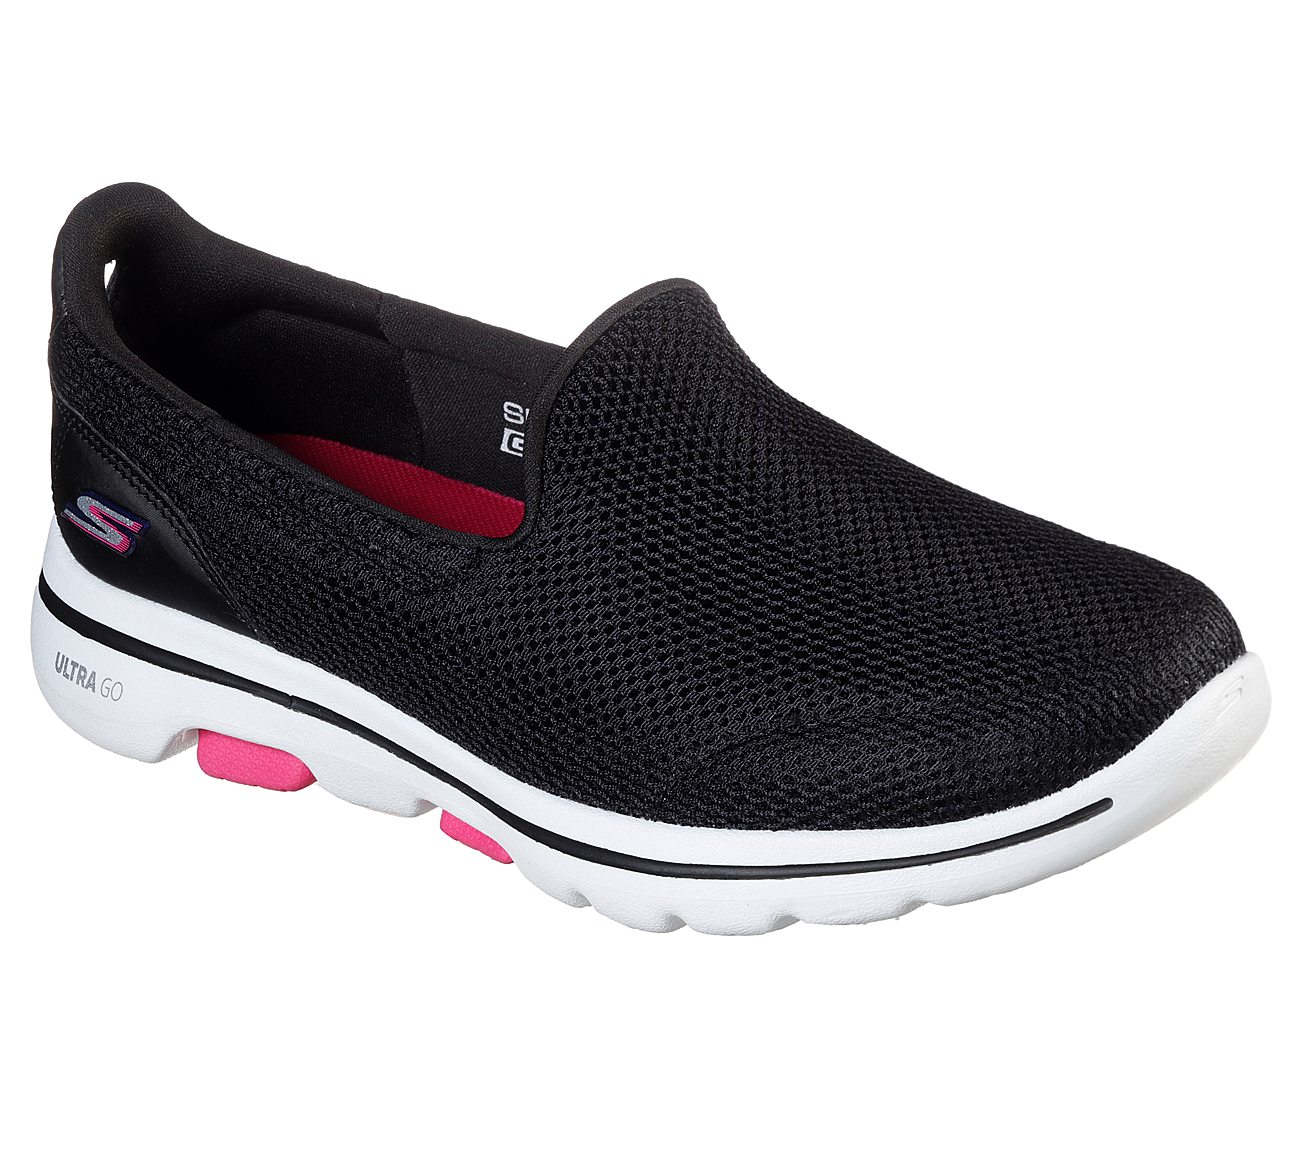 skechers sneaker shoes